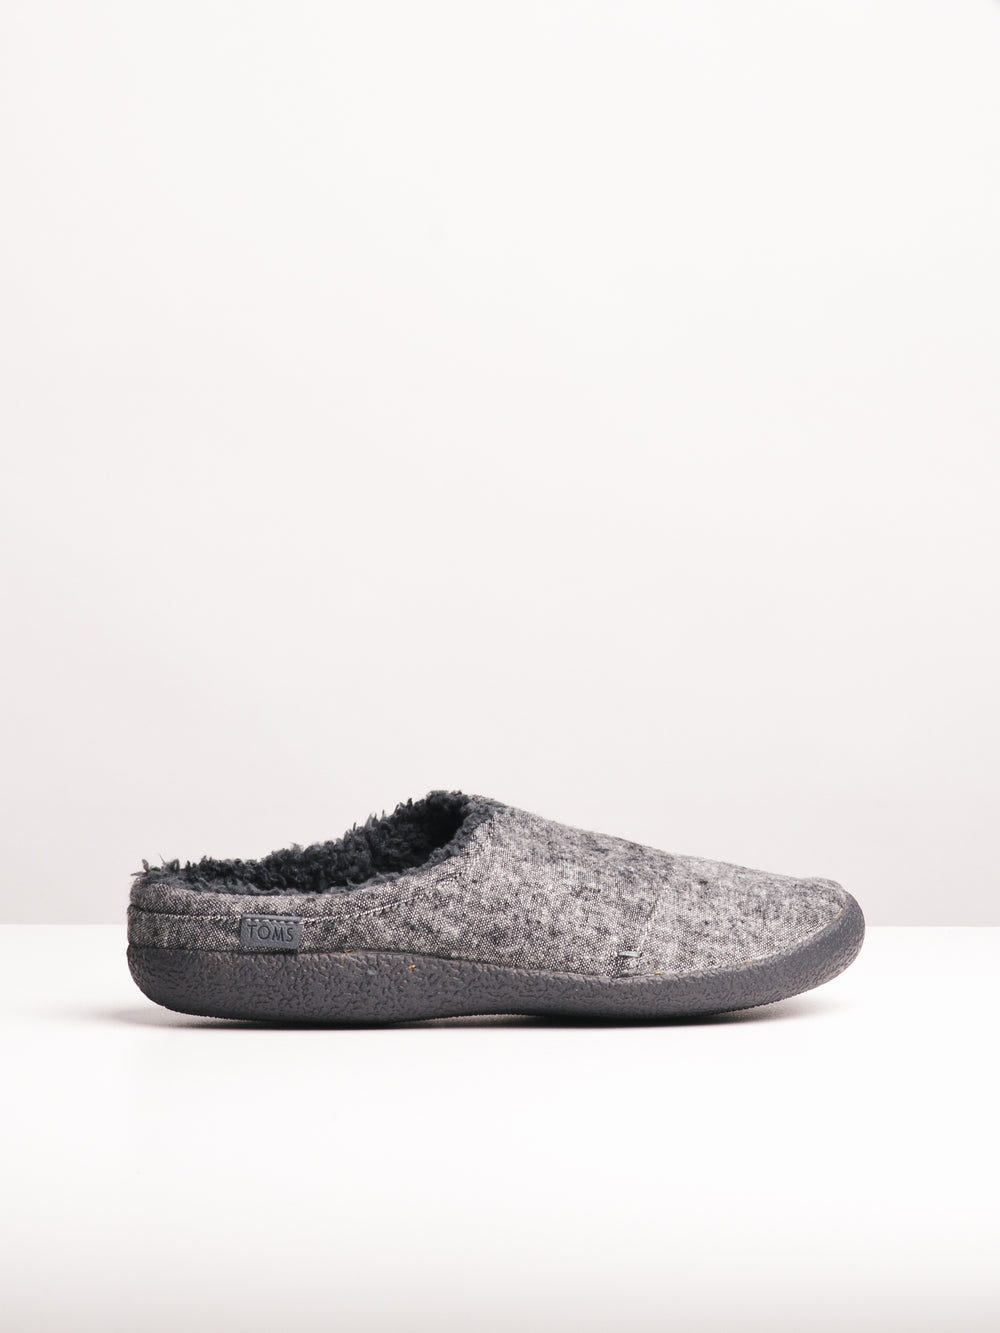 MENS BERKELEY  - GREY SLUB TEXTILE